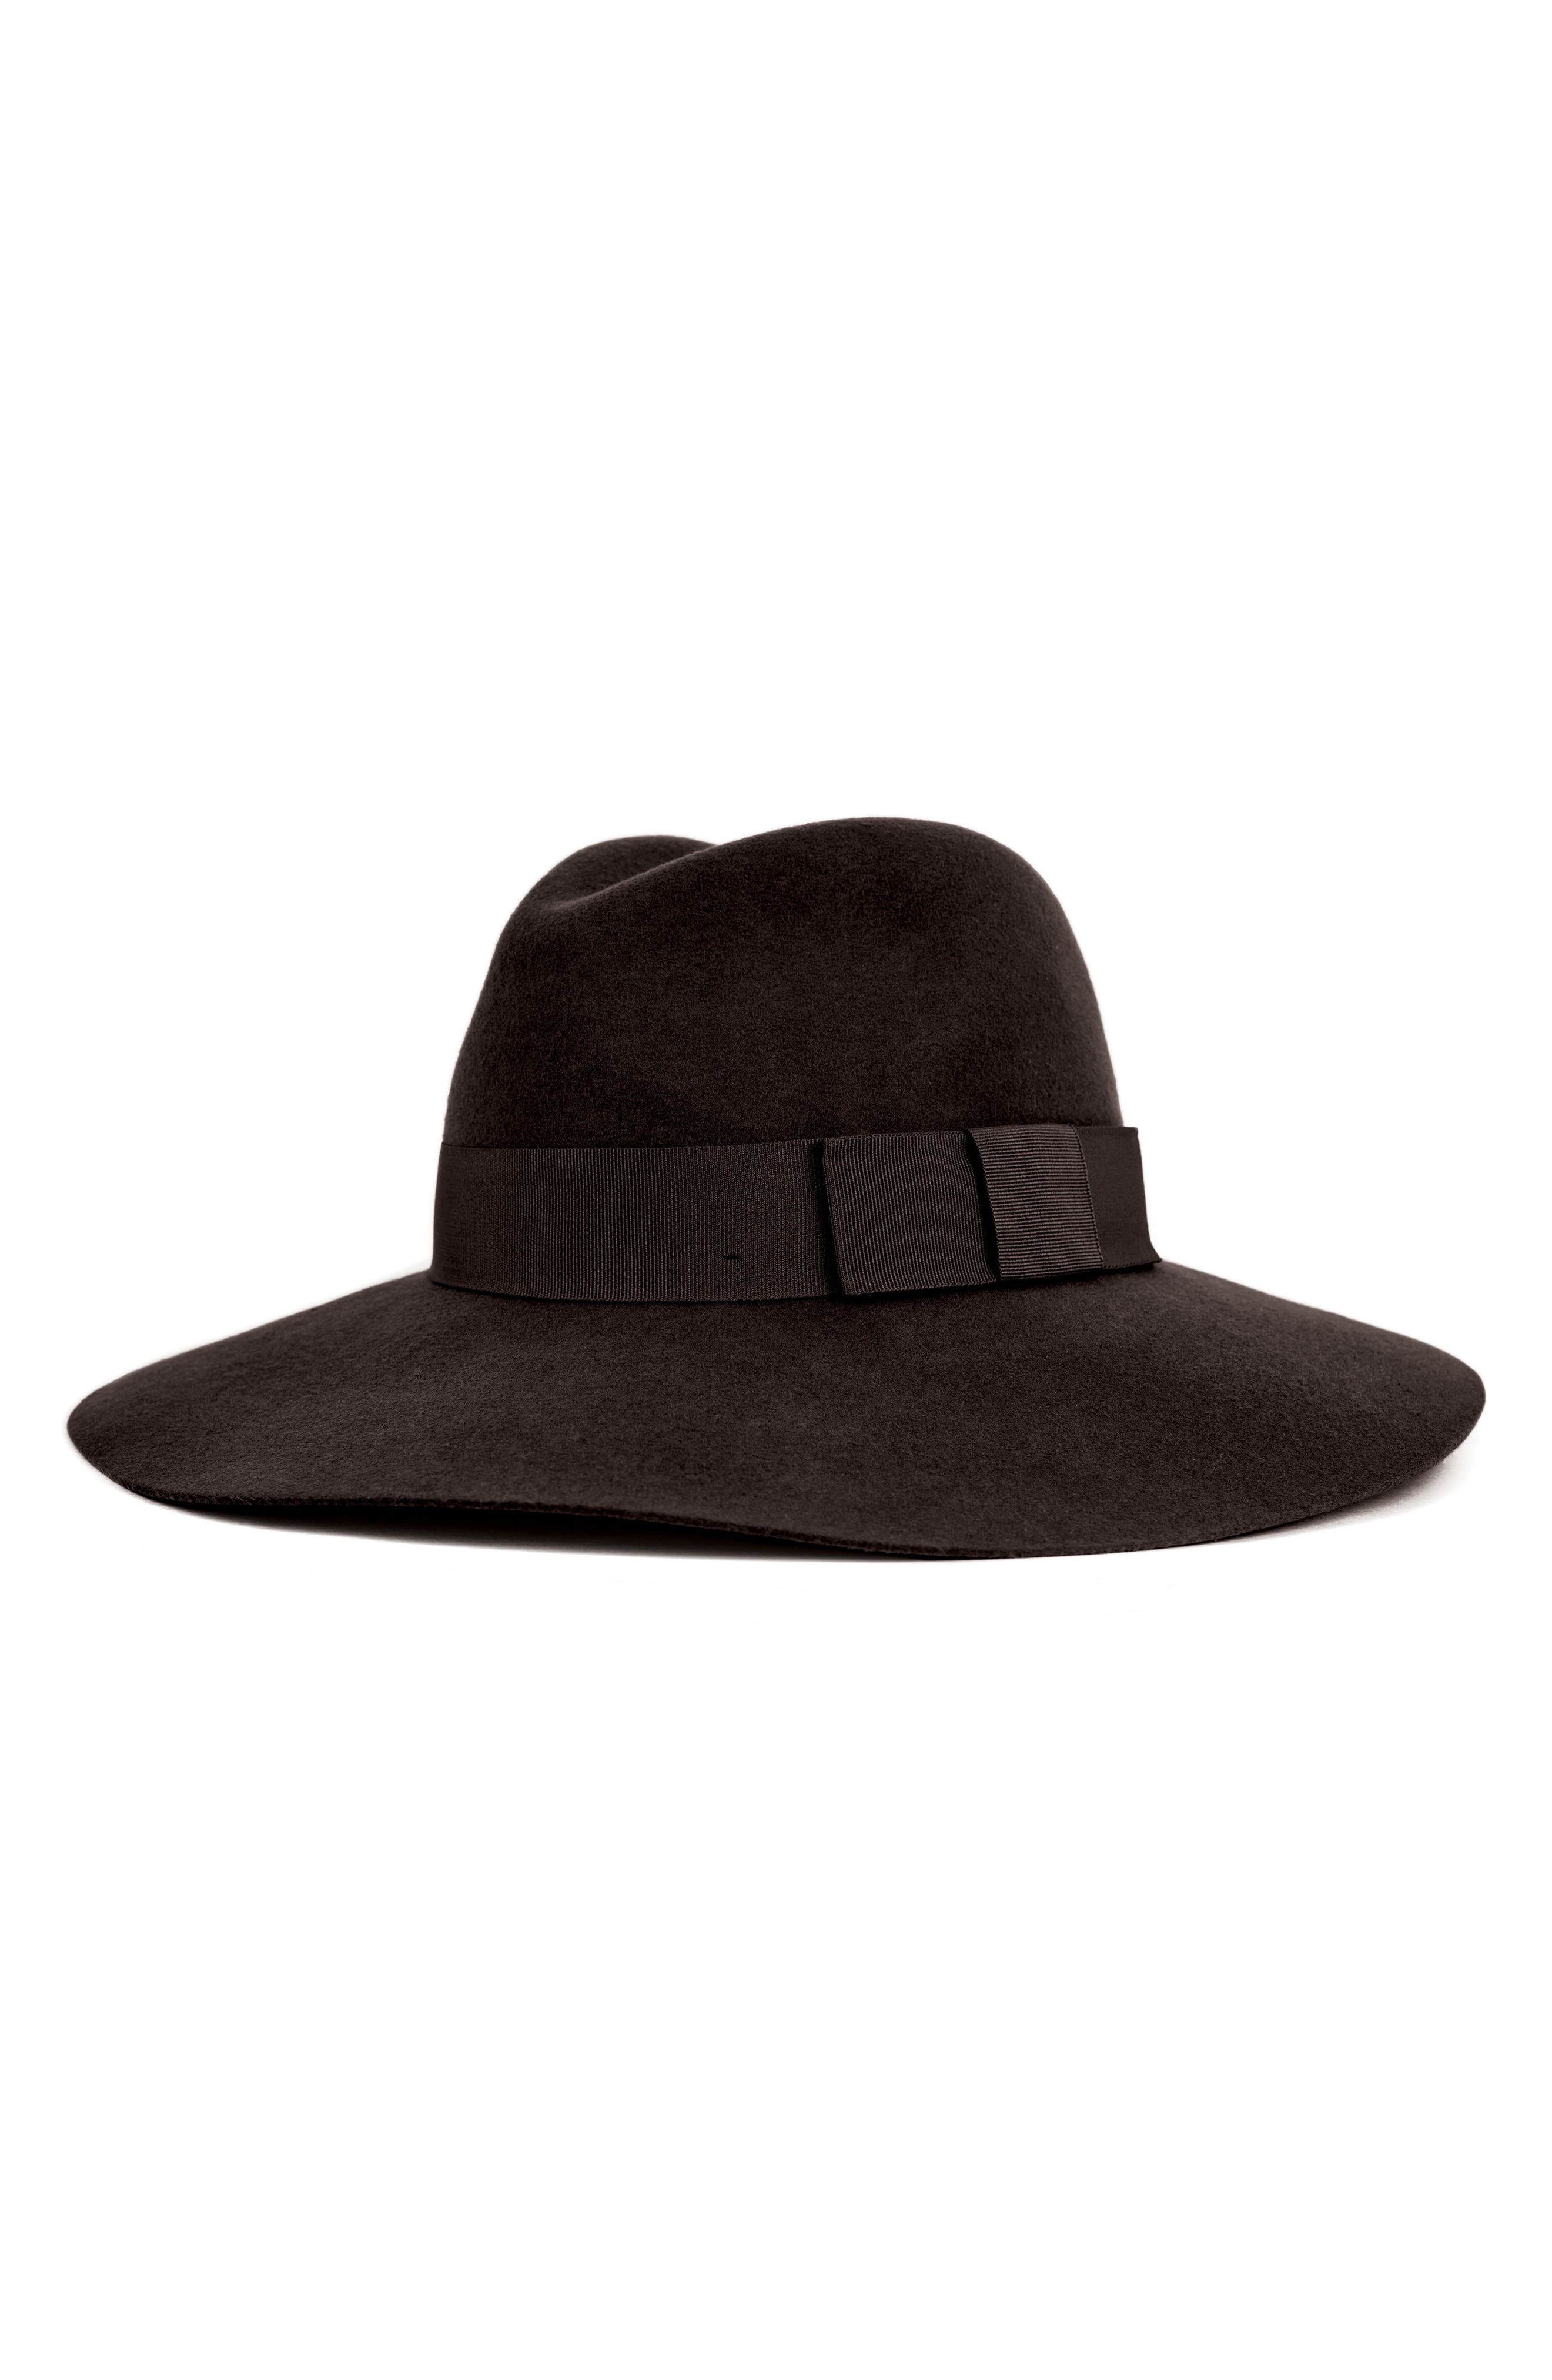 Main Image - Brixton 'Piper' Floppy Wool Hat